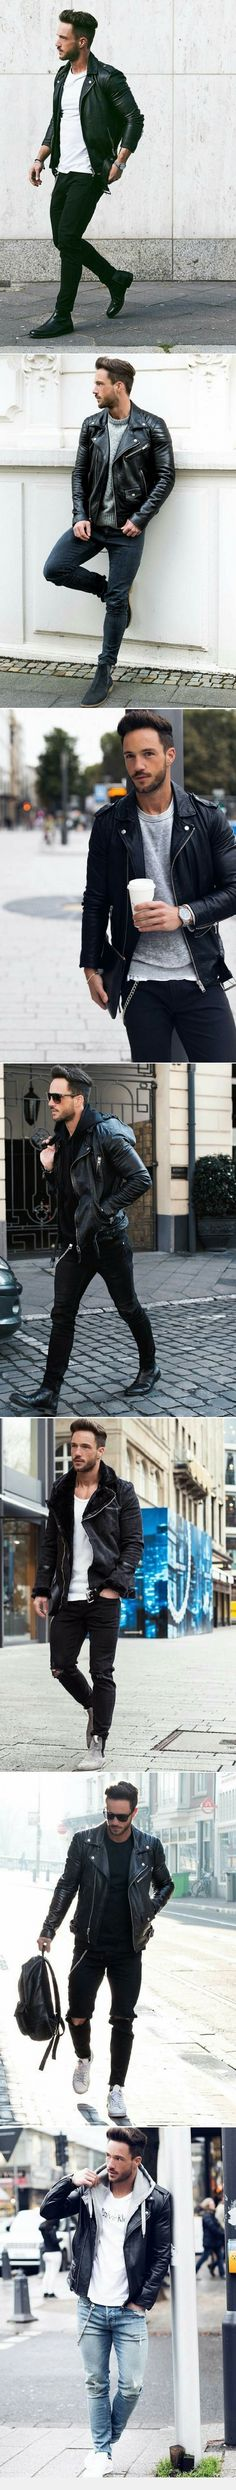 How to wear leather jacket on the street? See these amazing leather jacket outfit ideas.